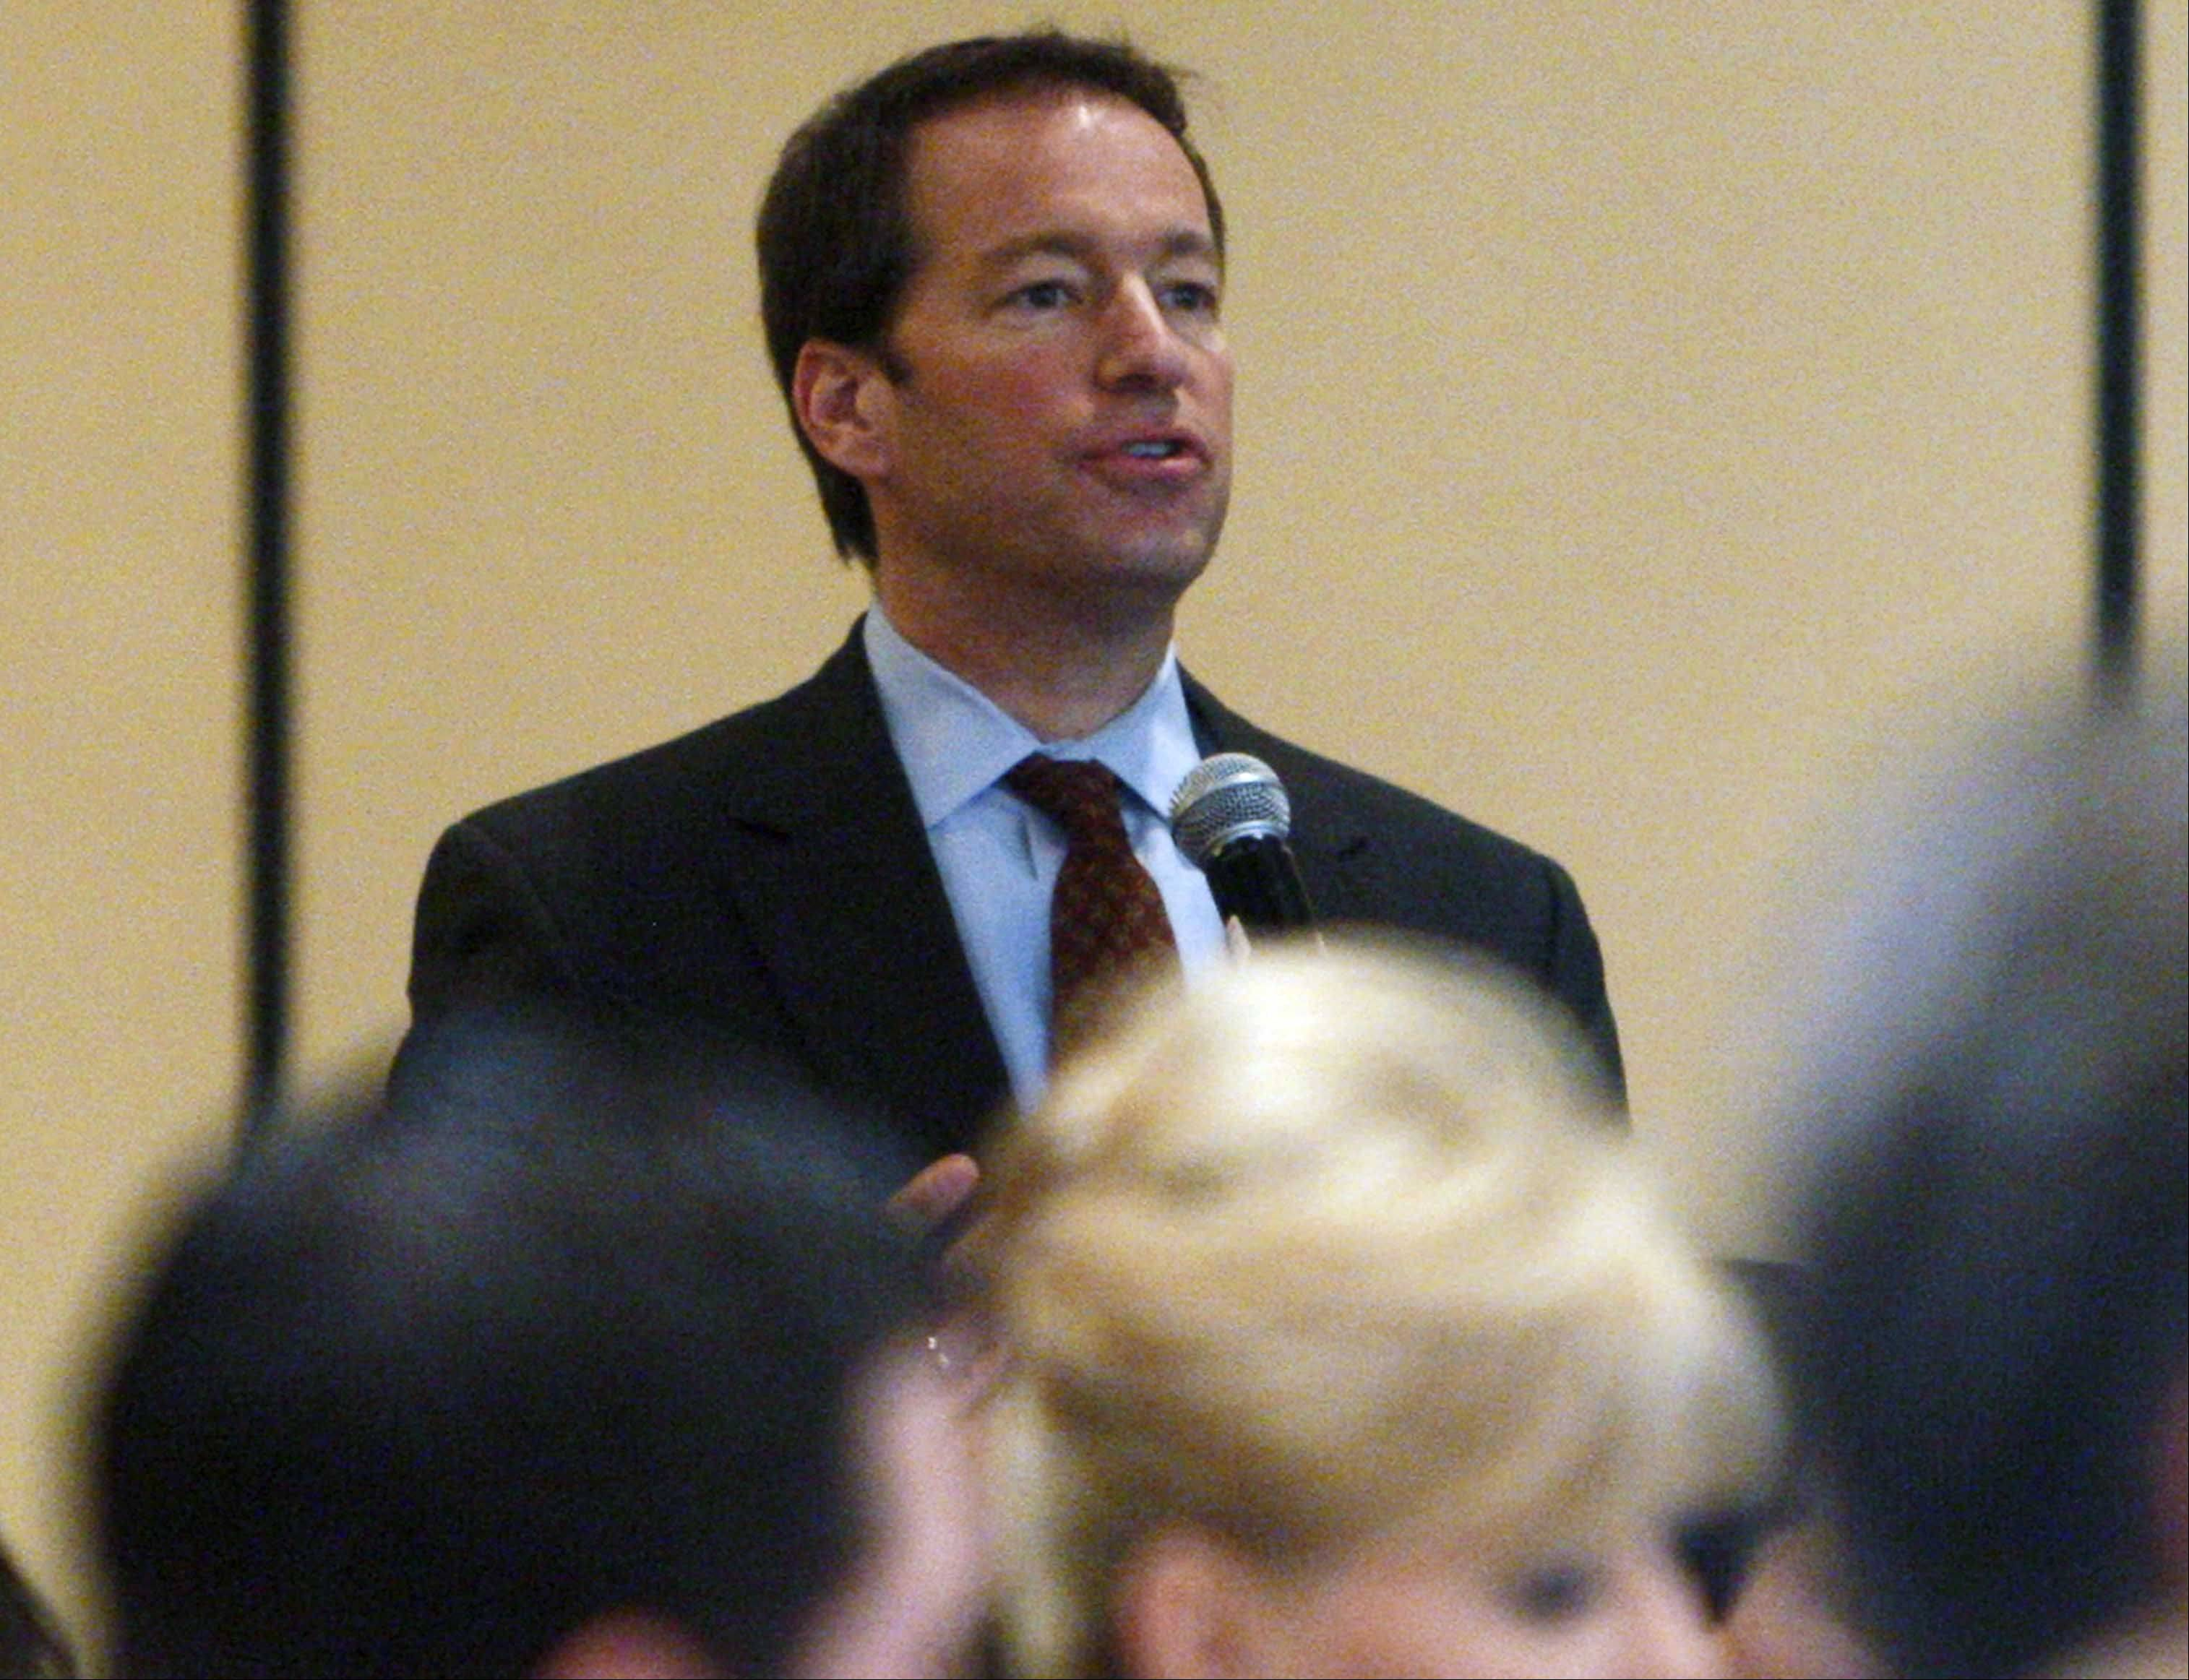 6th District Congressman and GOP Chief Deputy Whip Rep. Peter Roskam